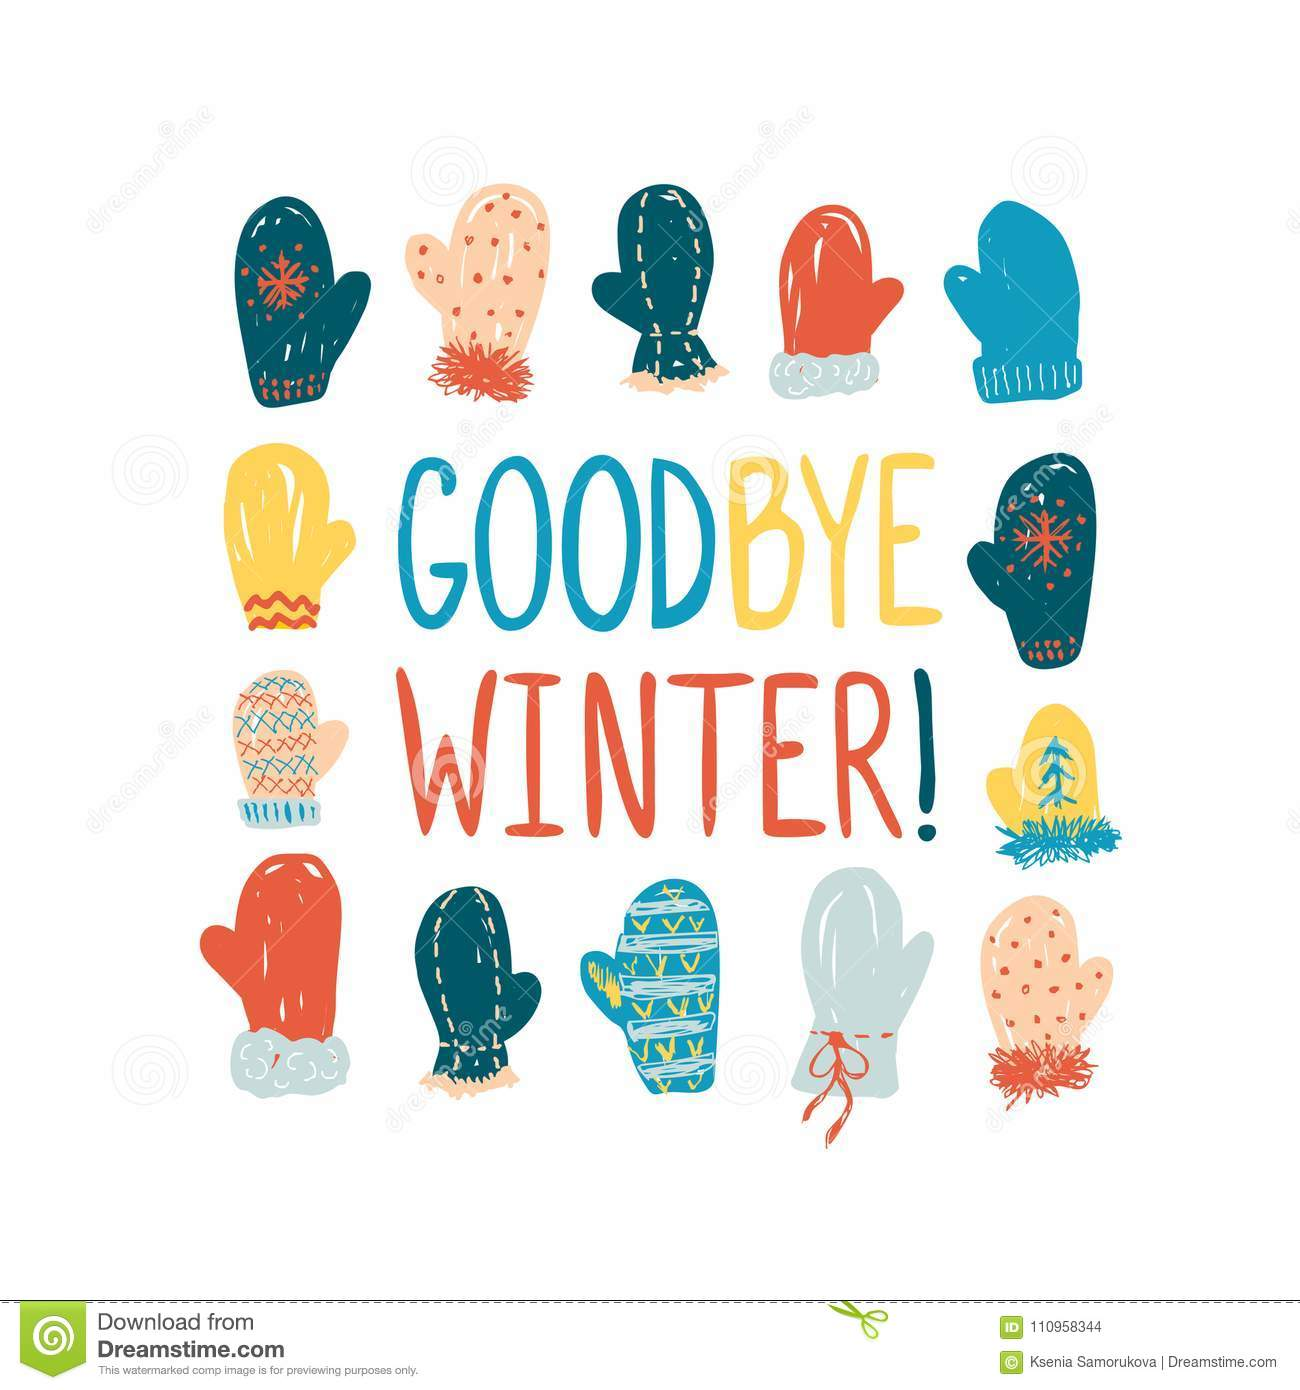 Goodbye winter greeting card with mittens stock illustration goodbye winter greeting card with mittens kristyandbryce Image collections